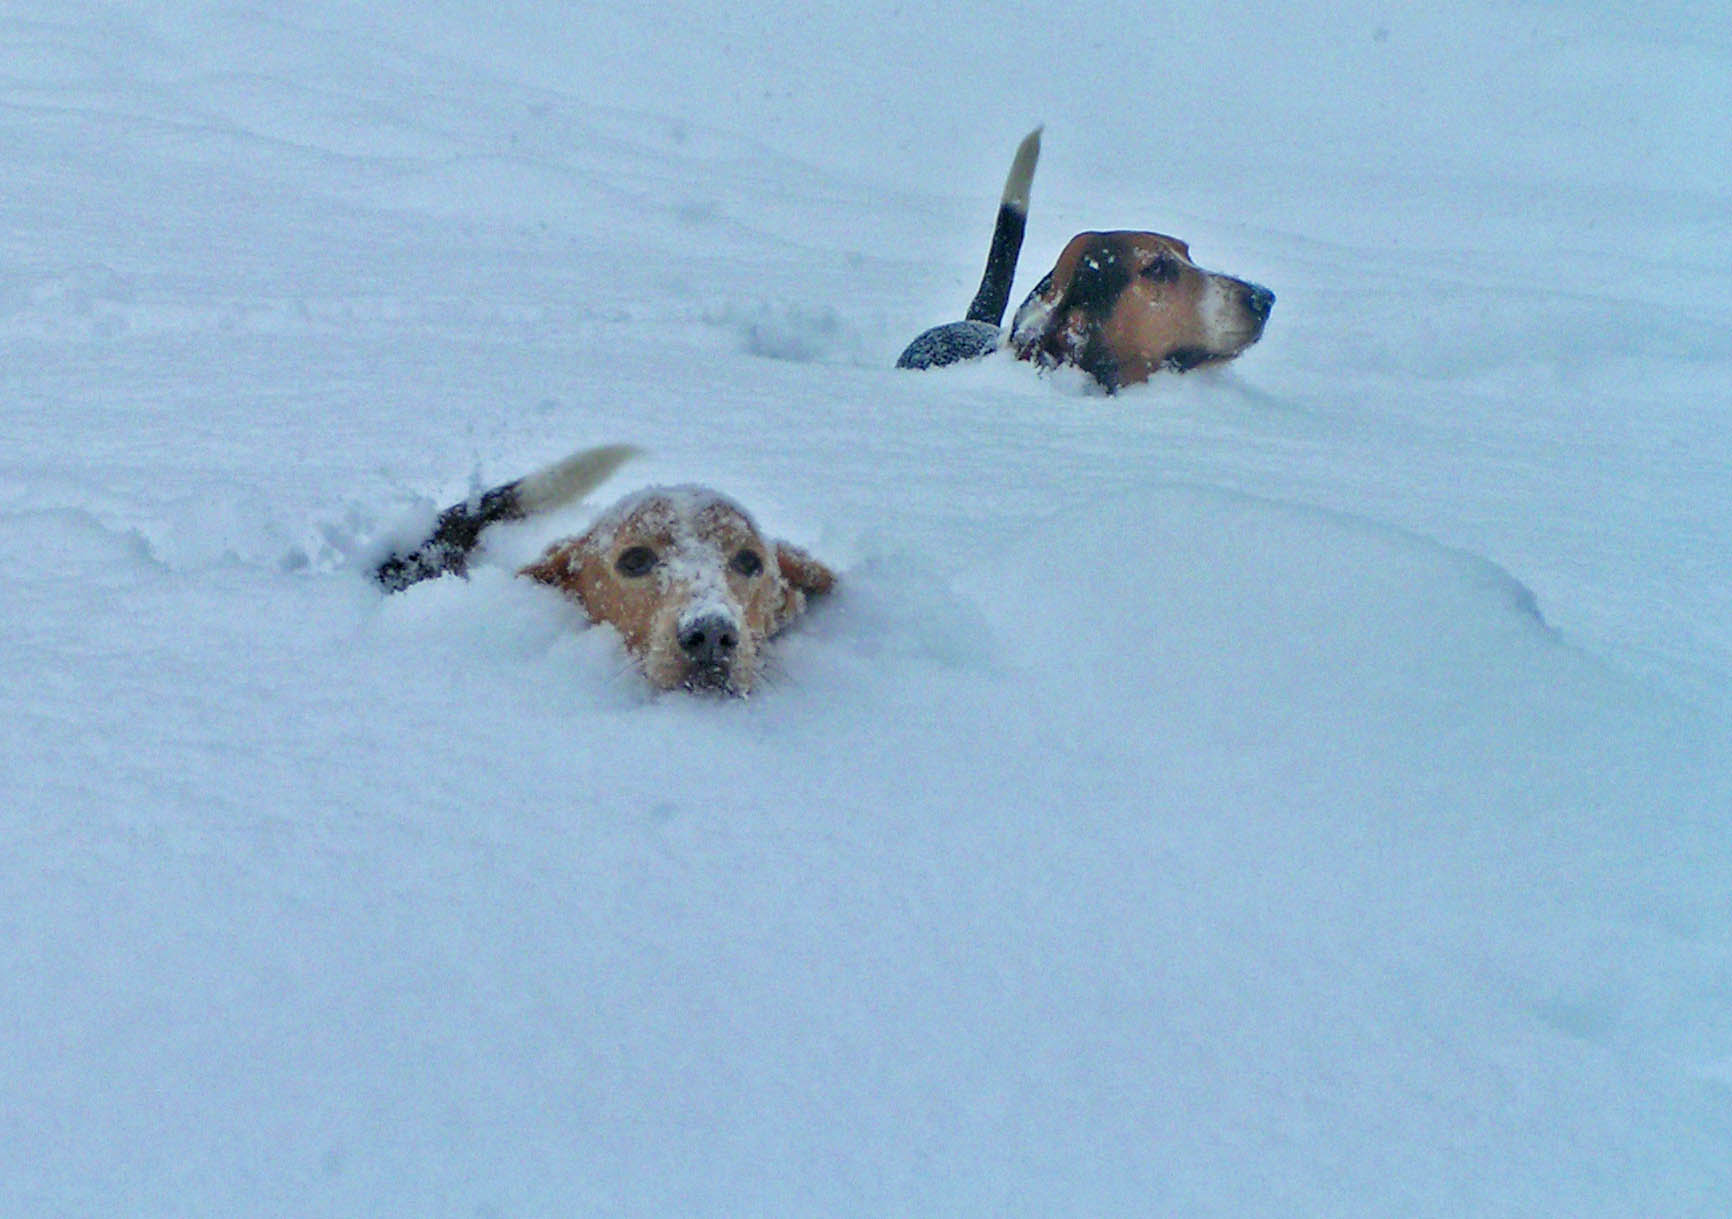 Dude on the left, Elvis on the right - surfing snow in the front yard, winter 2009. Photo: (c) Barb Ayers, DogDiary.org